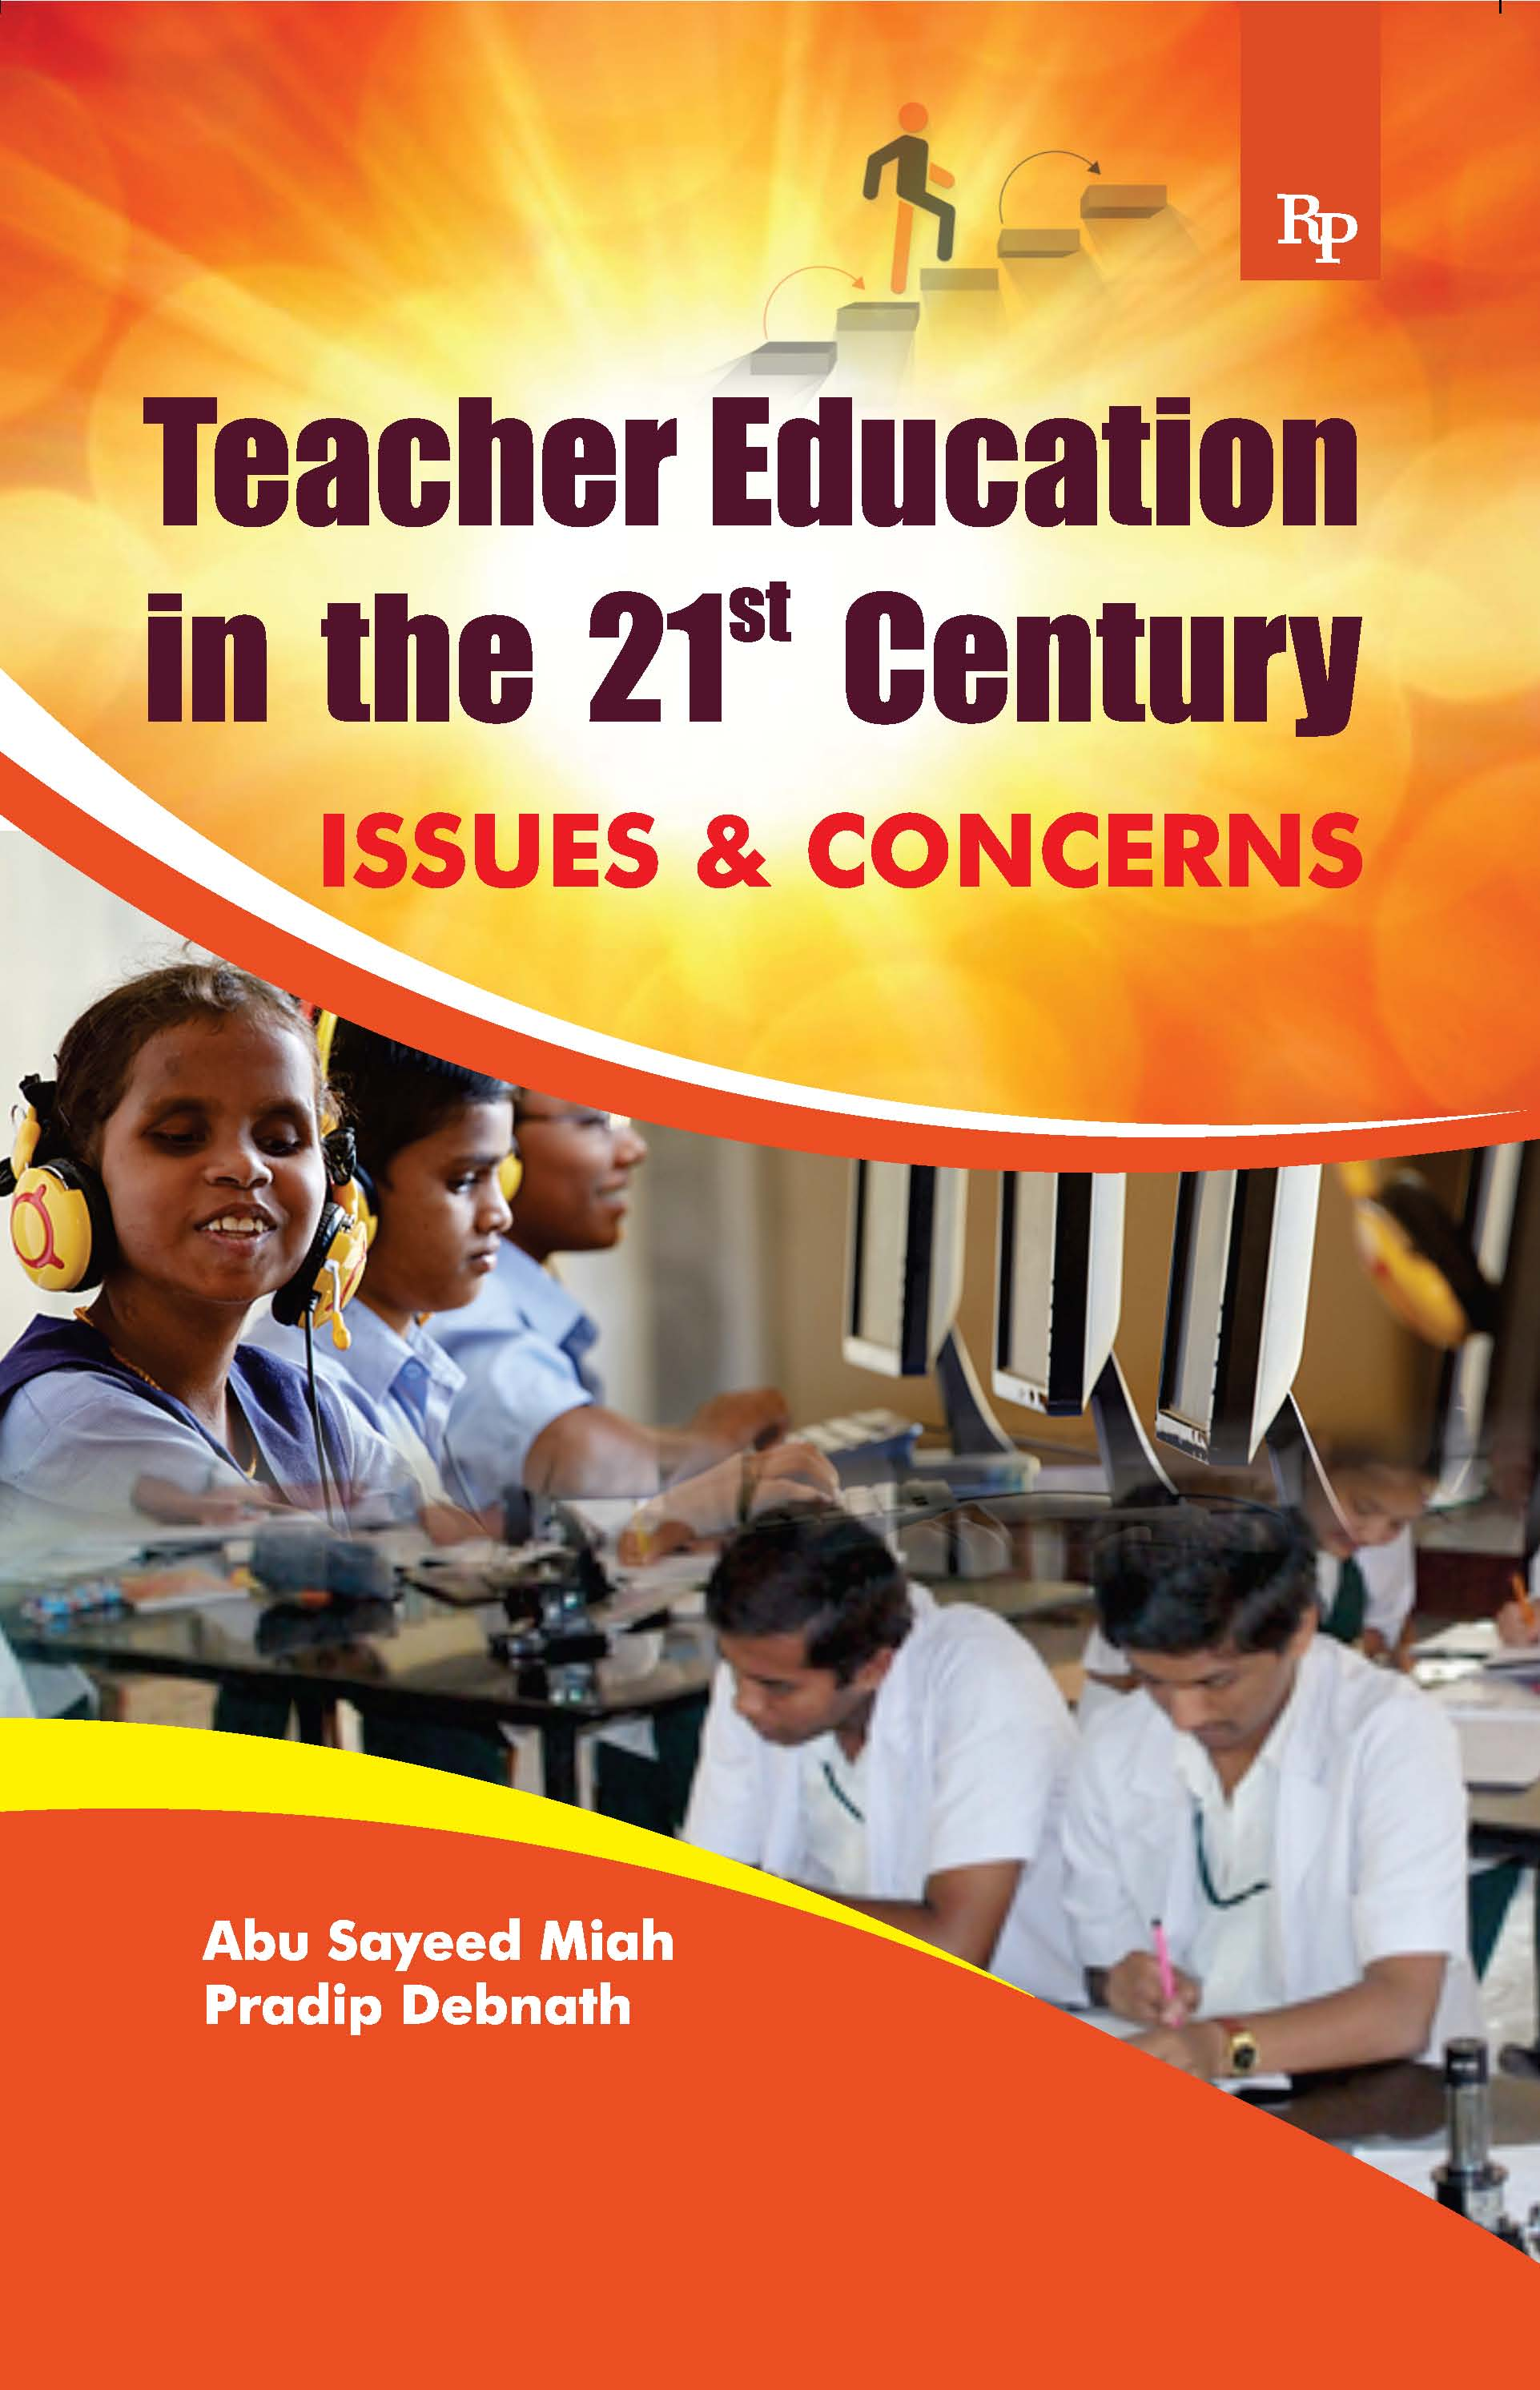 Teacher Education in 21st Centuary new.jpg